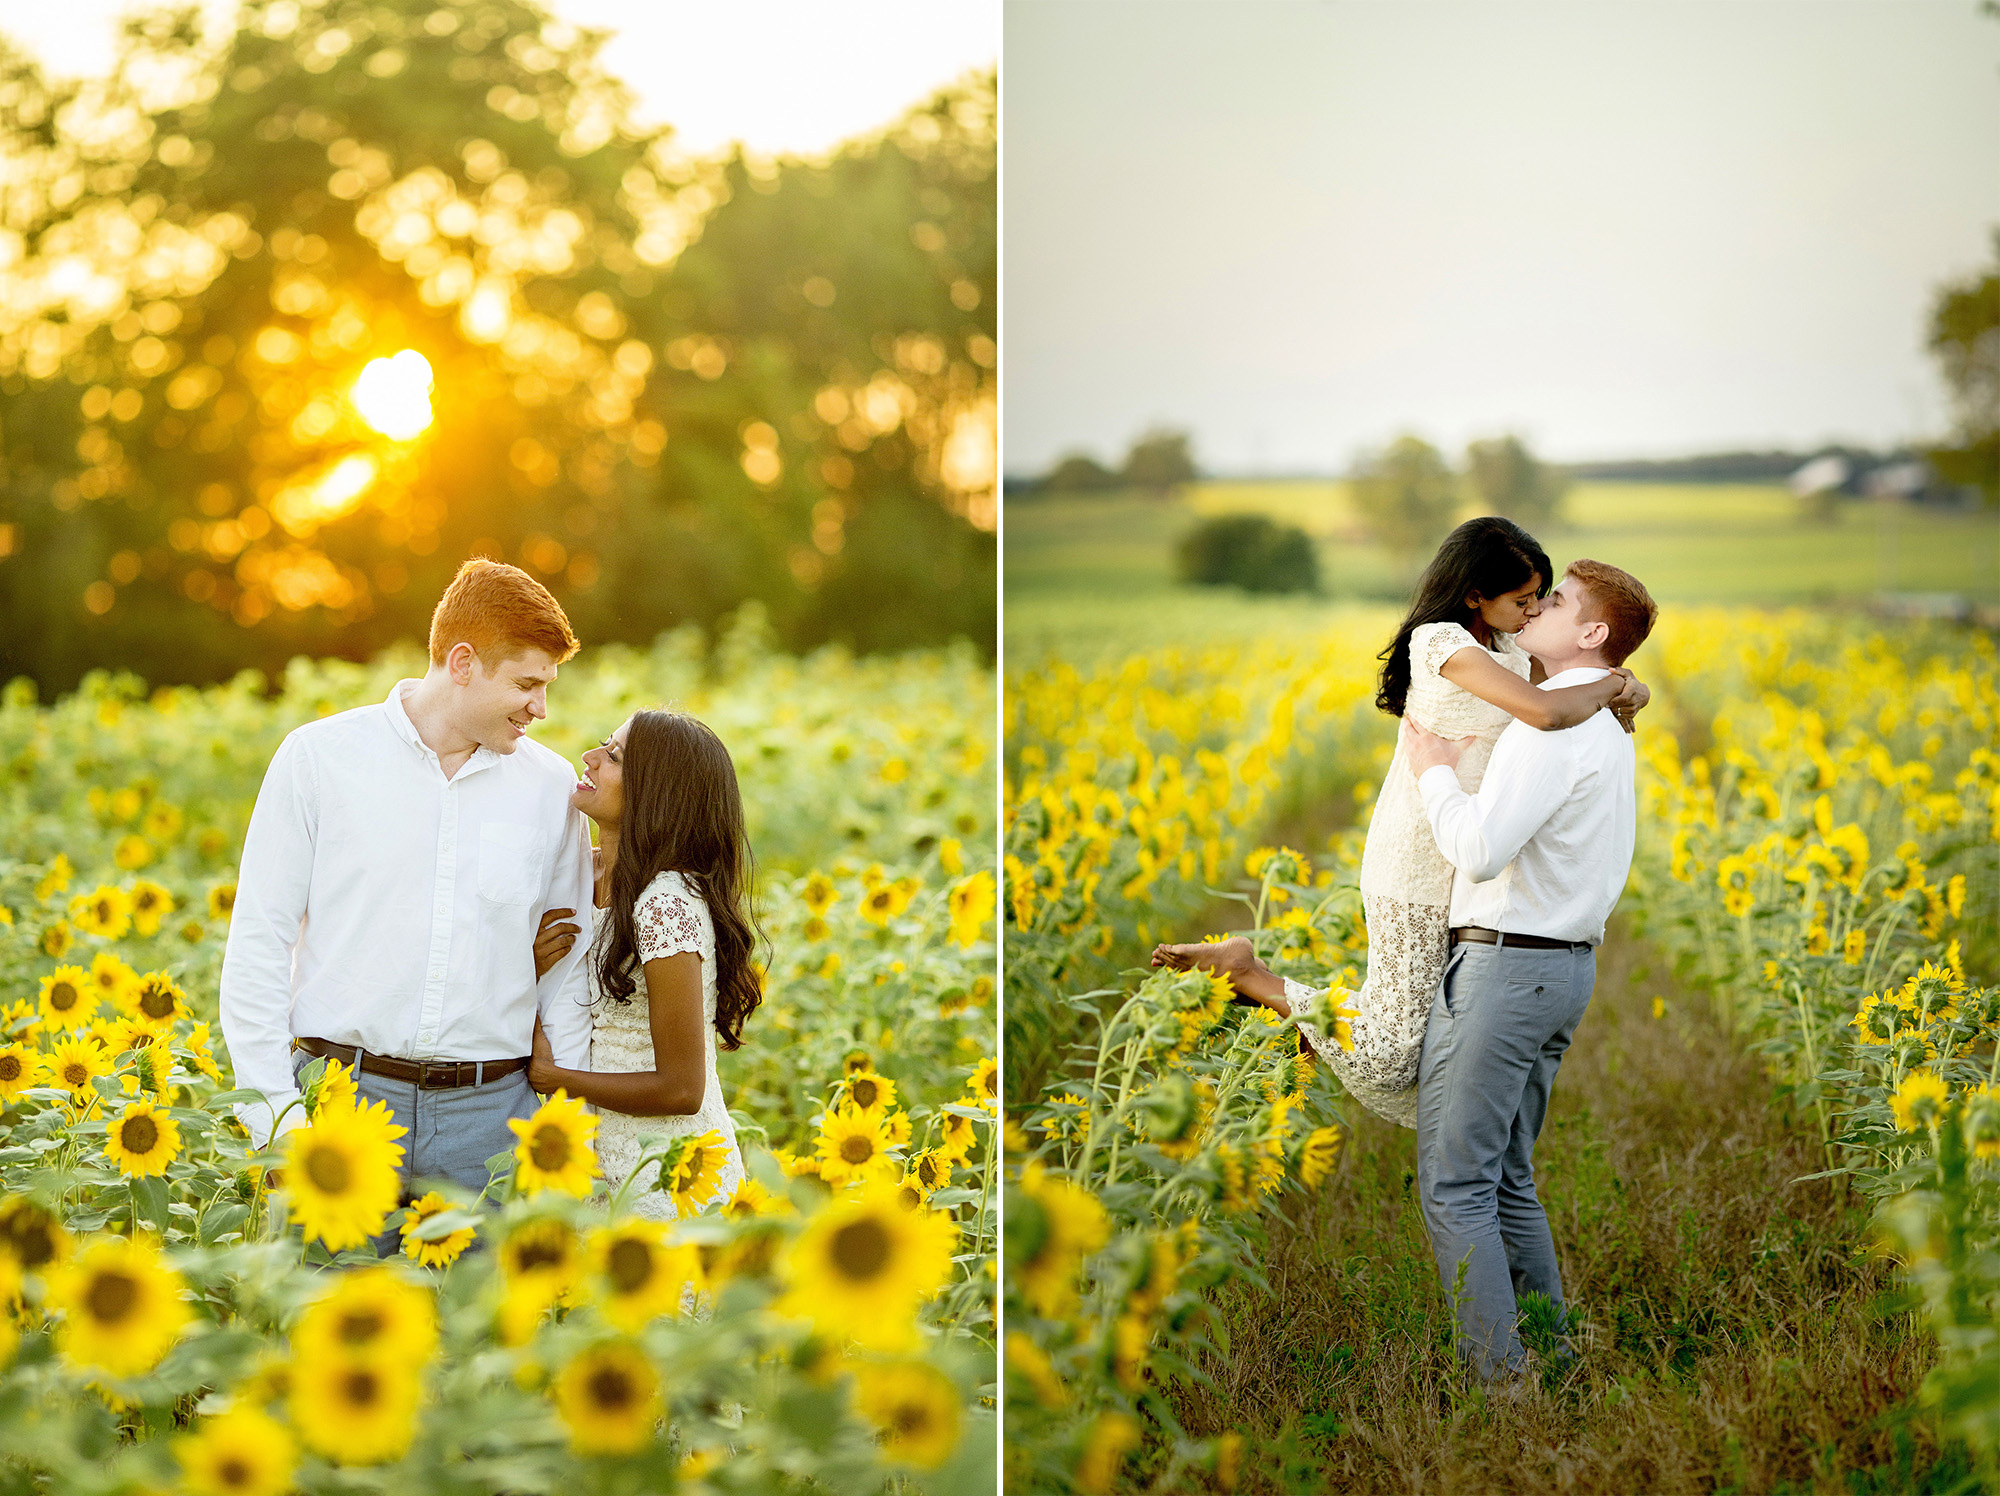 Seriously_Sabrina_Photography_Lexington_Midway_Kentucky_Engagement_Merefield_Sunflowers_Naz_and_Drew13.jpg